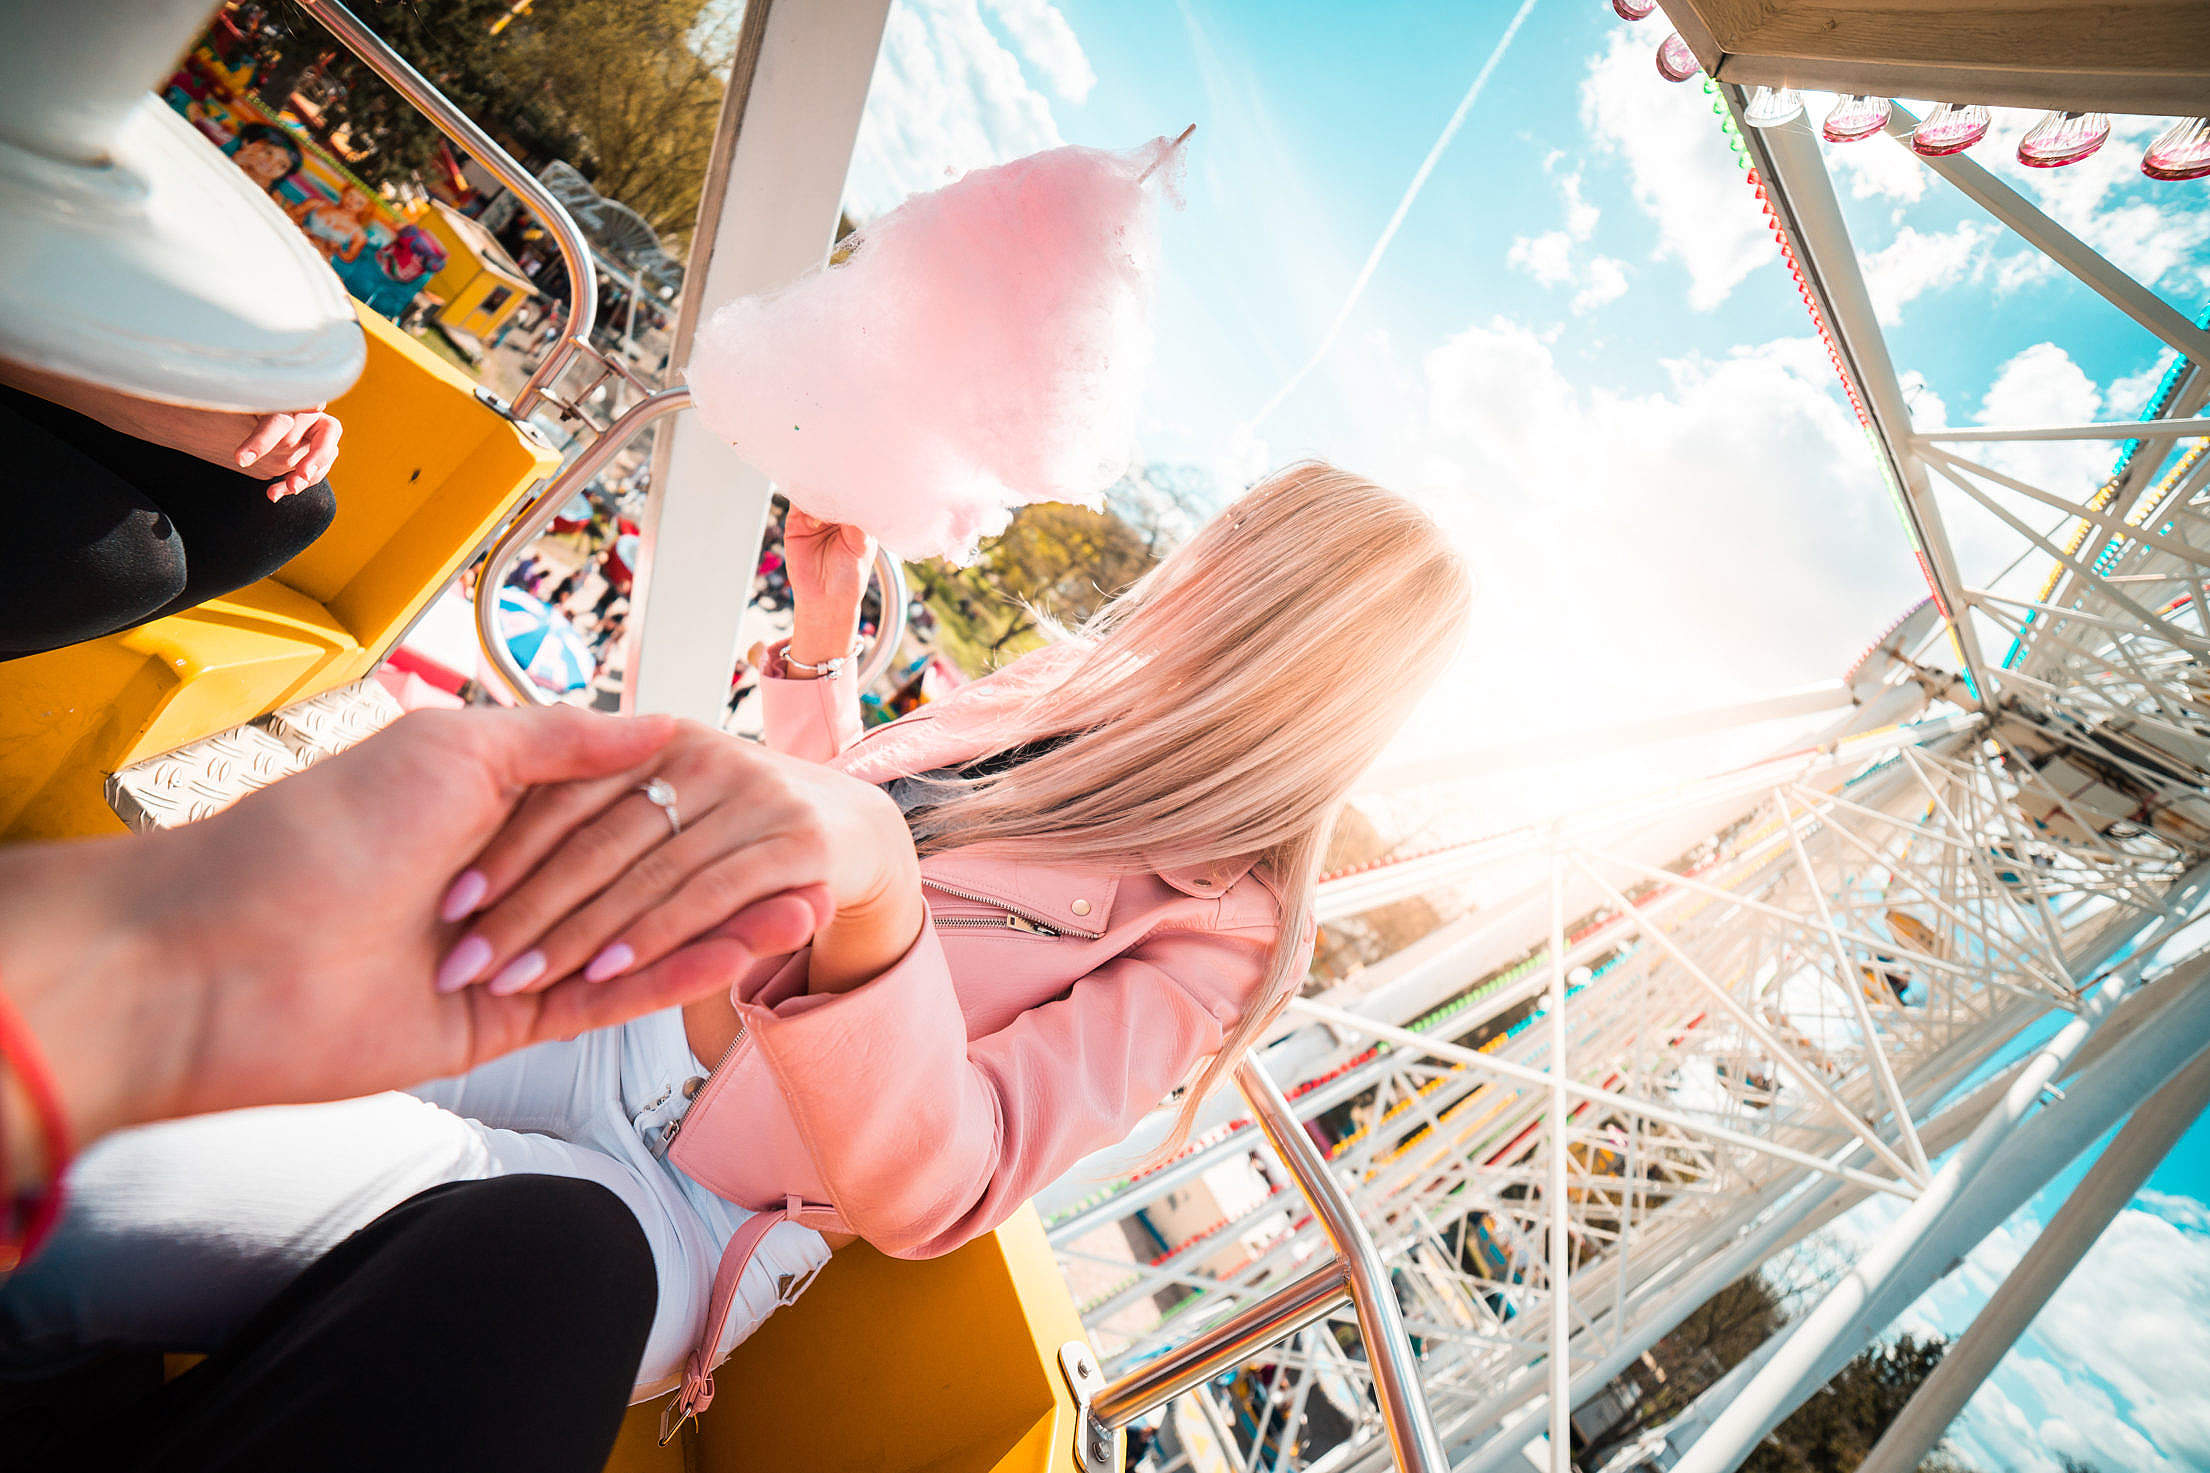 lovely-couple-on-date-ferris-wheel_free_stock_photos_picjumbo_dsc07775-2210x1473.jpg